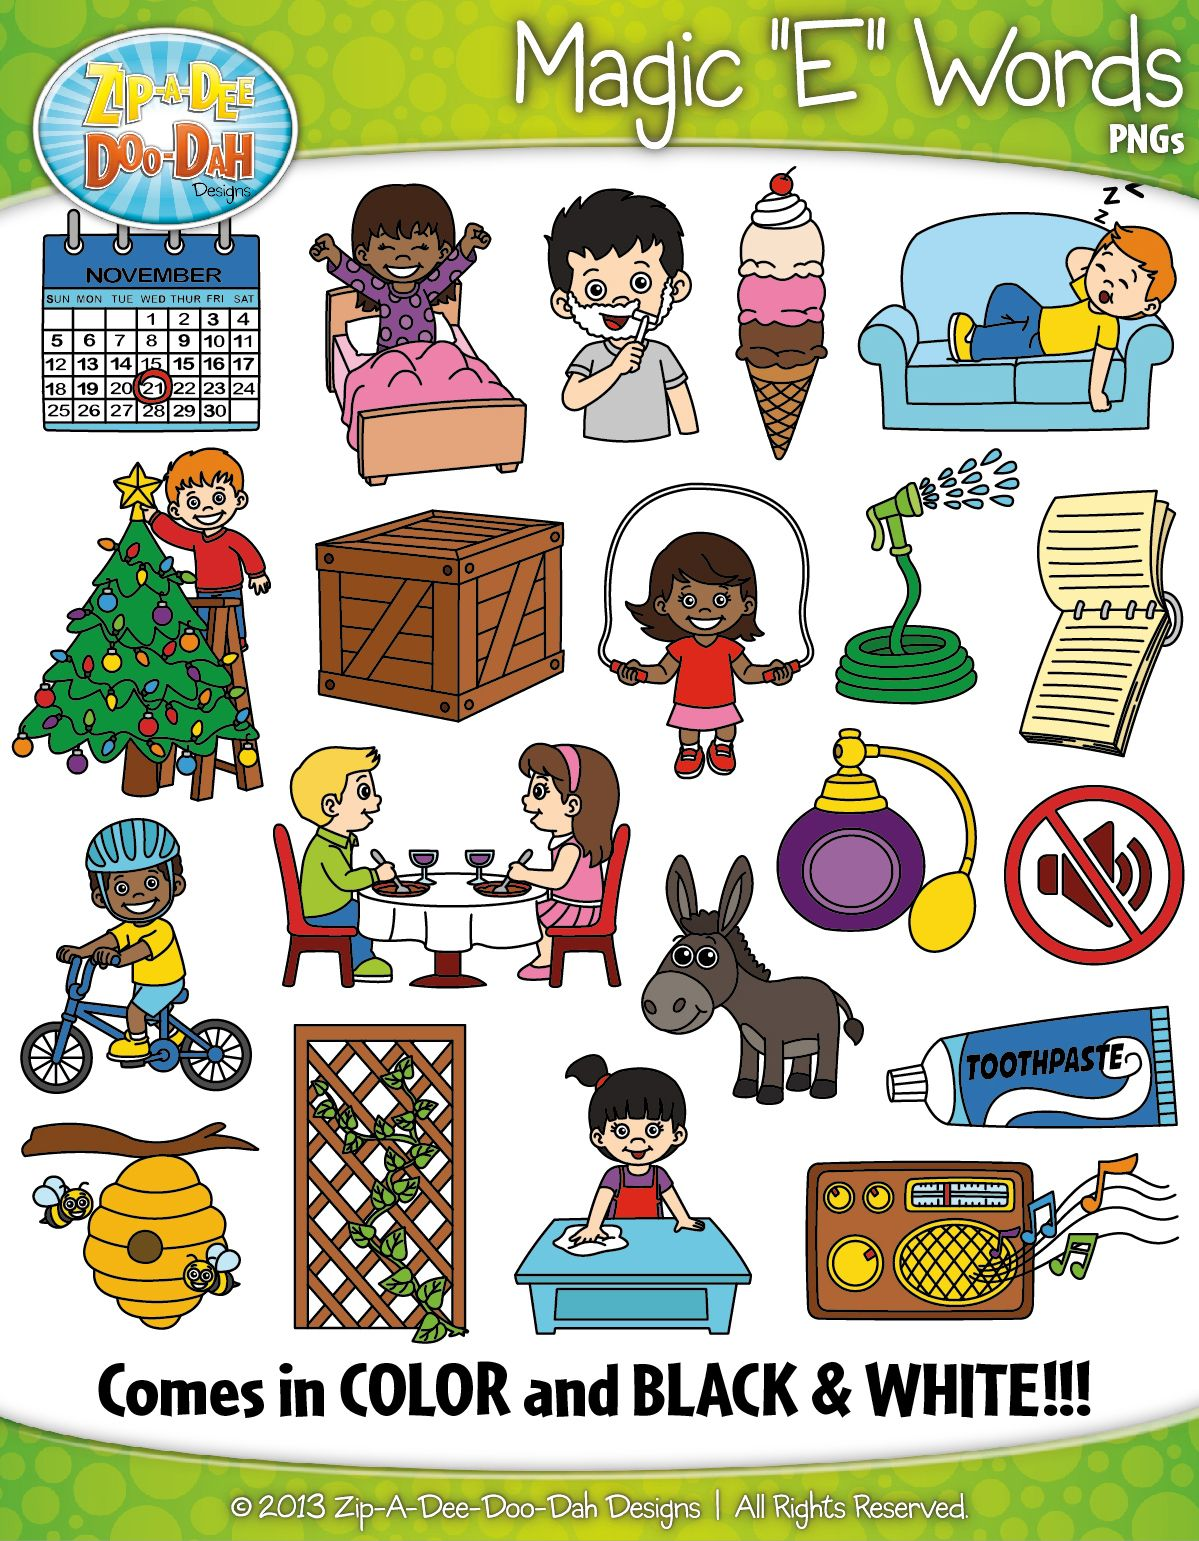 13 in words clipart clipart royalty free download Magic E Phonics Words Clipart {Zip-A-Dee-Doo-Dah Designs} | My ... clipart royalty free download